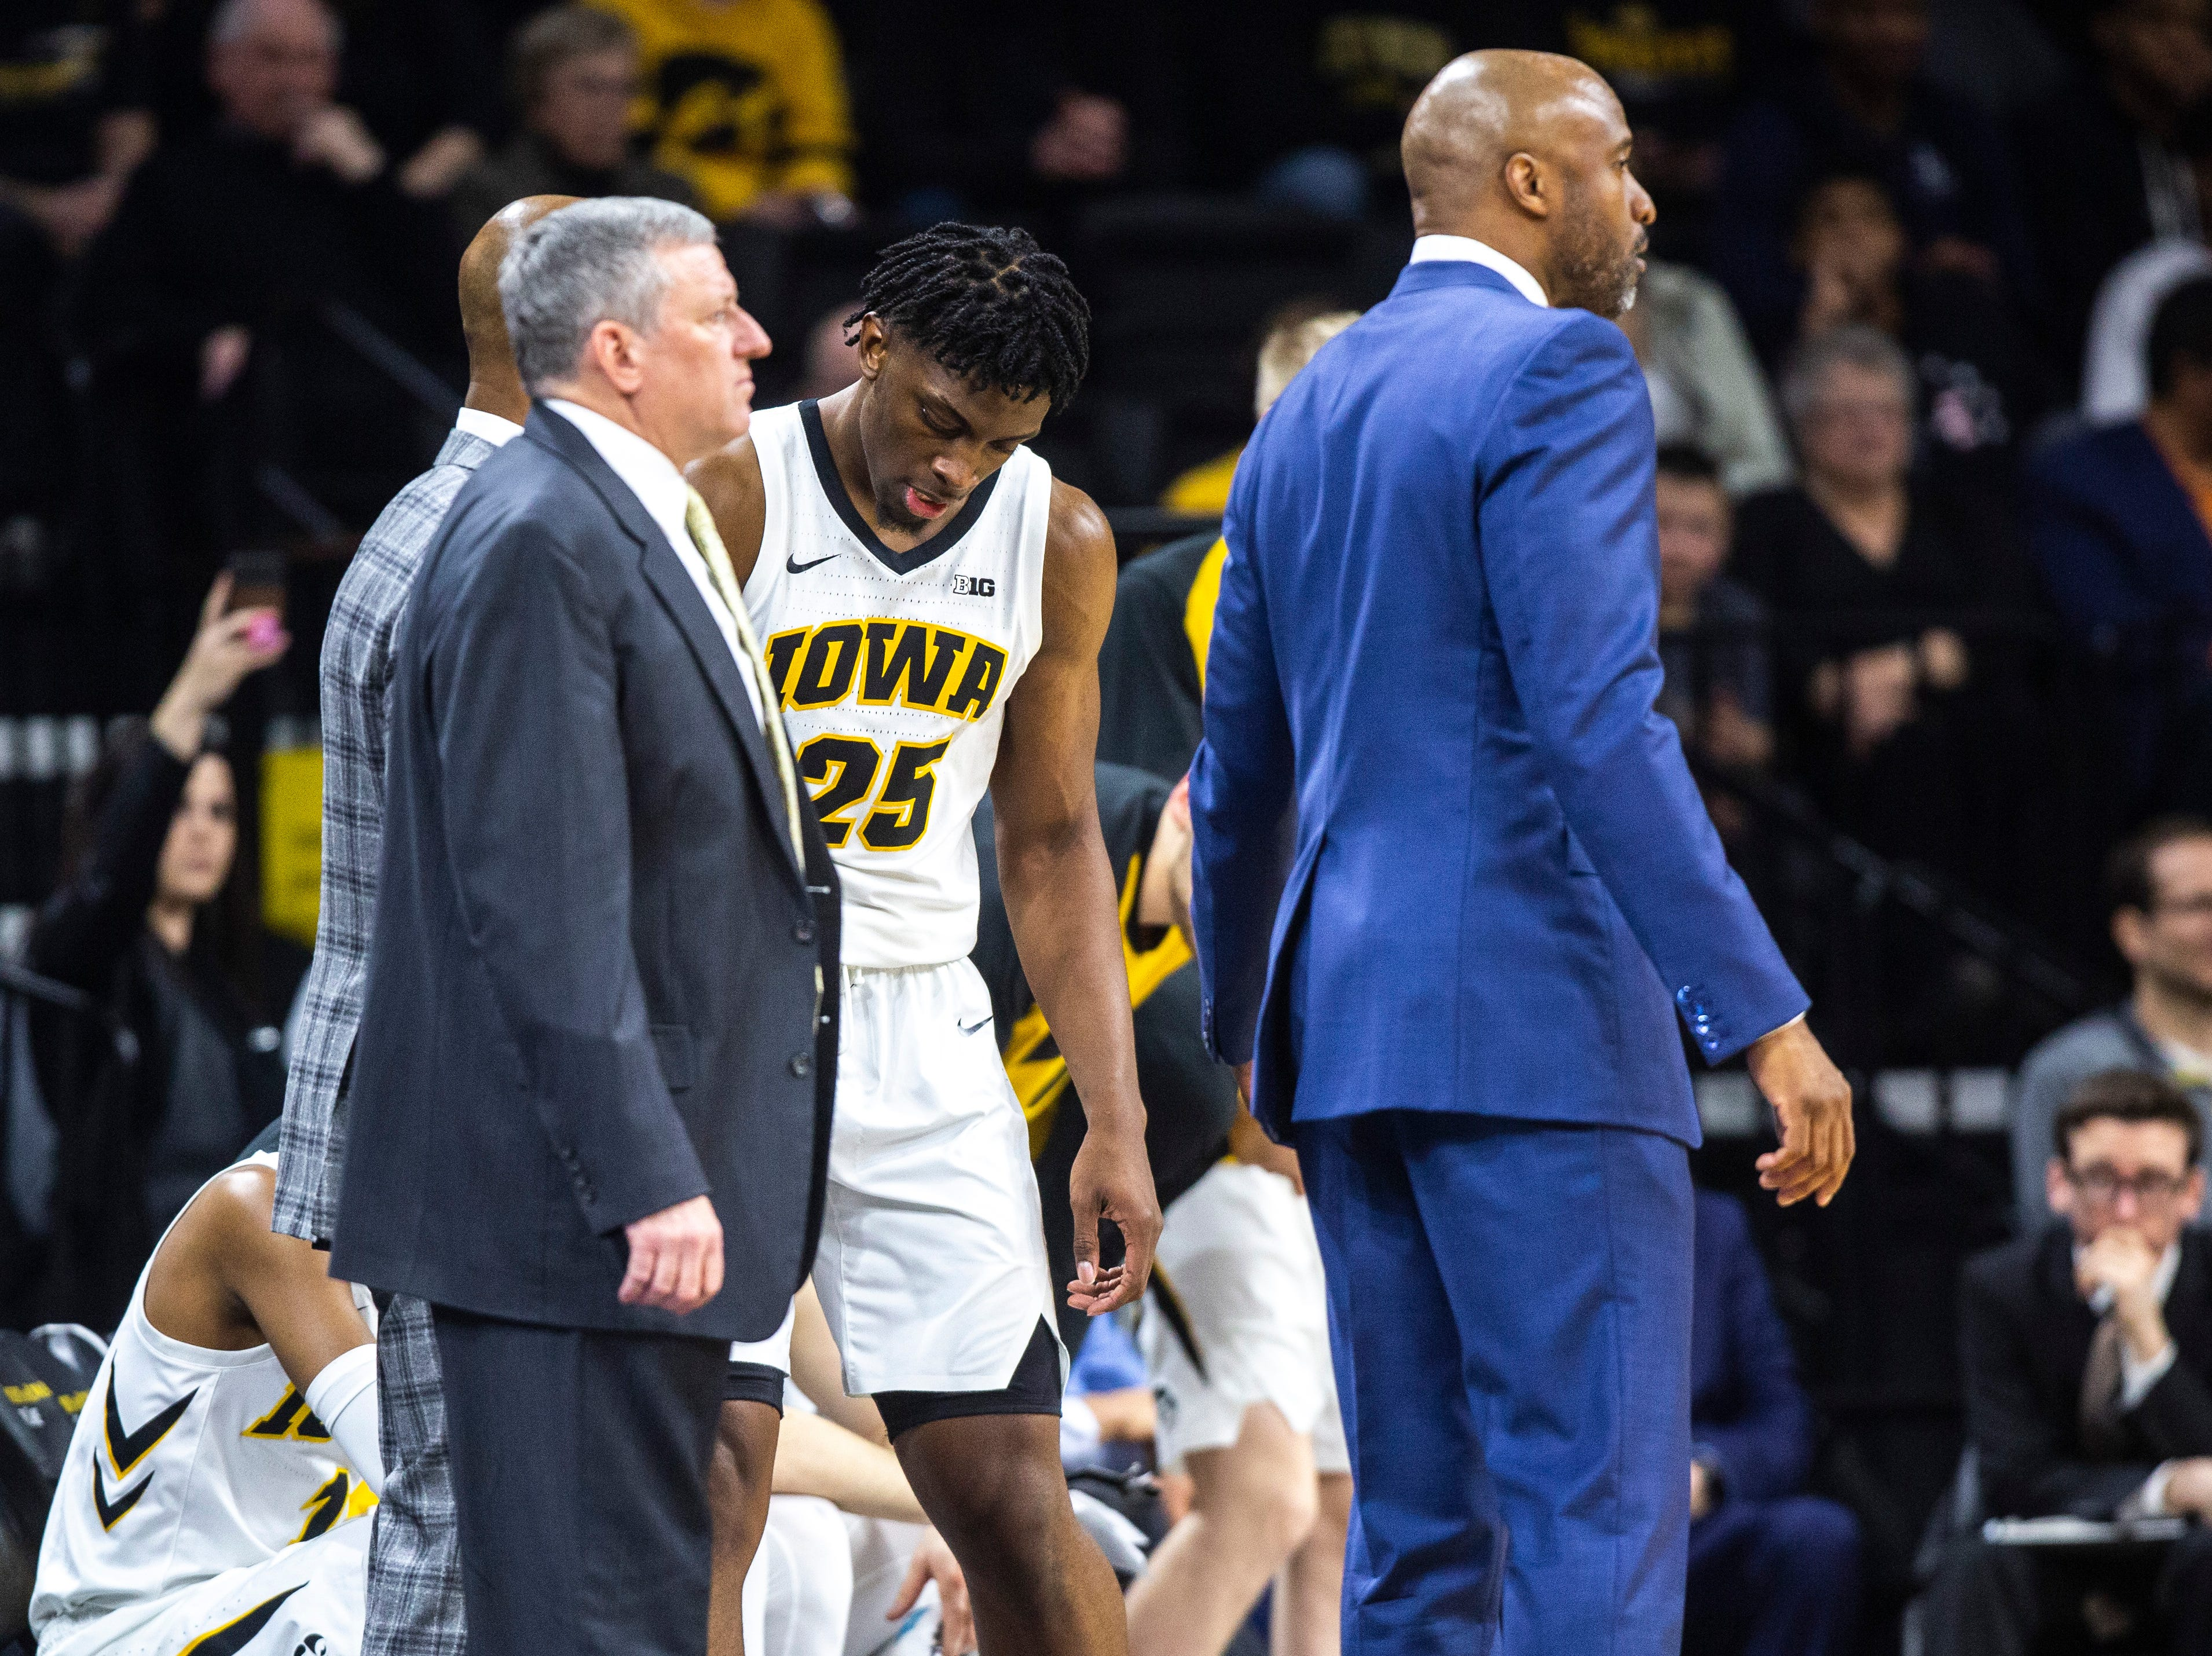 Iowa forward Tyler Cook (25) heads to the bench between Iowa assistant Kirk Speraw and Andrew Francis during a NCAA Big Ten Conference men's basketball game on Saturday, March 2, 2019, at Carver-Hawkeye Arena in Iowa City, Iowa.